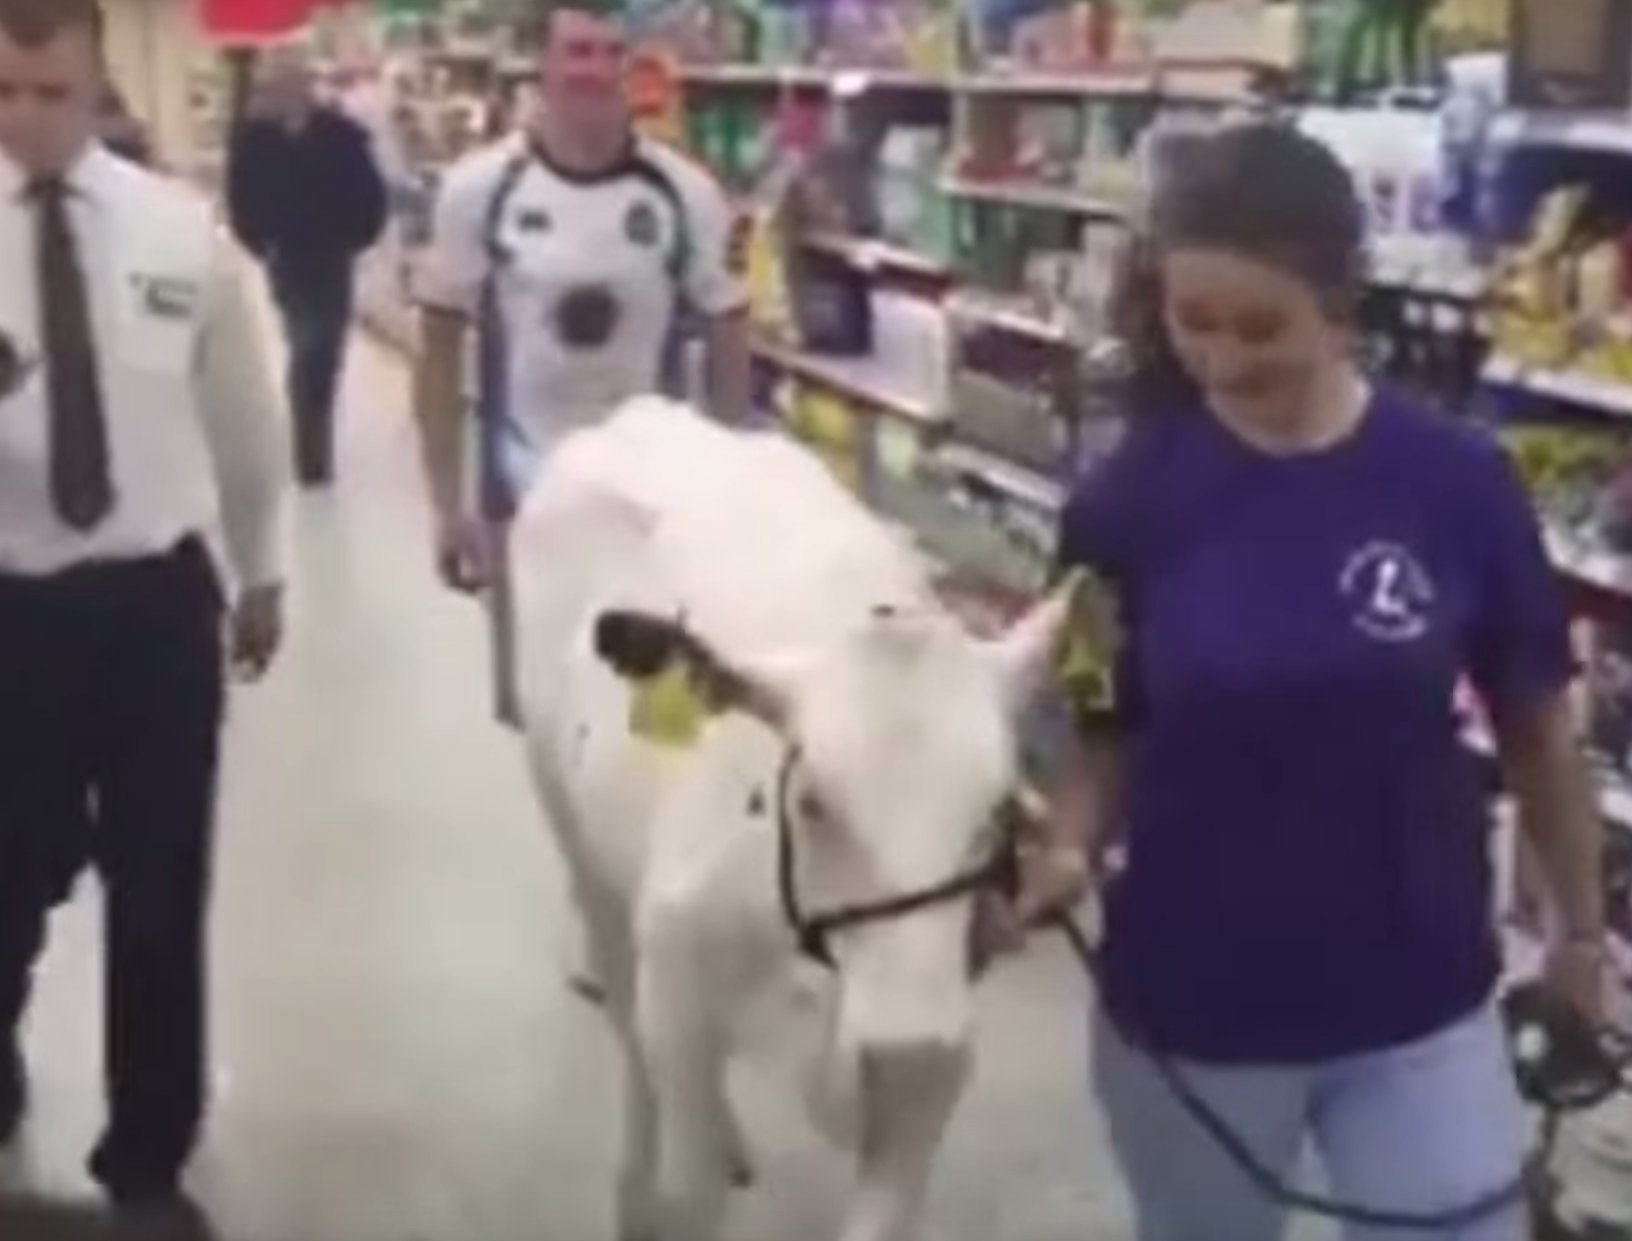 The cow was taken through the supermarket in Dumfries and Galloway as part of the protest